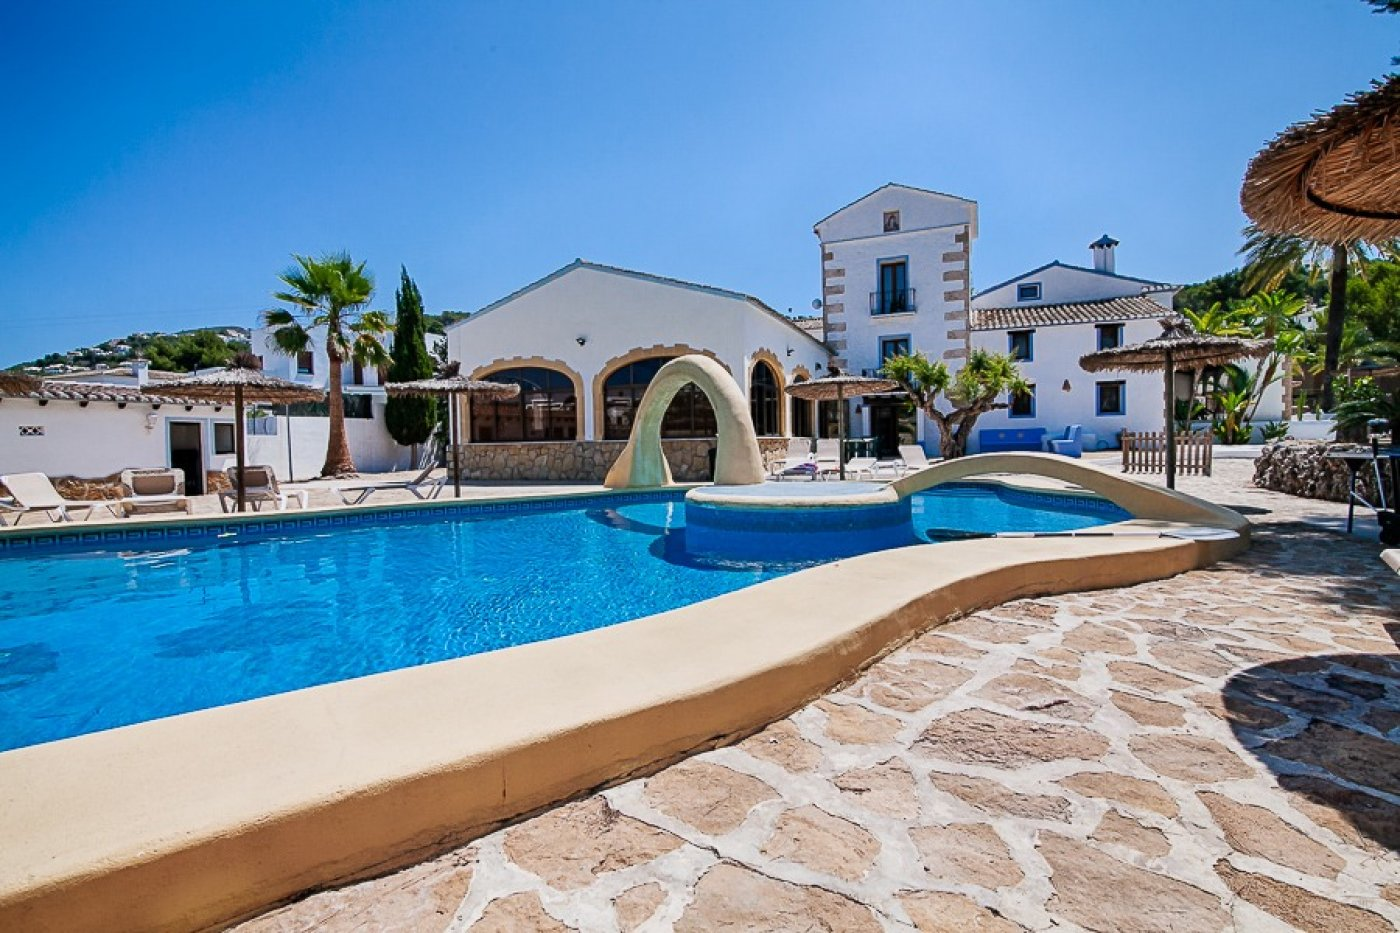 Villa - Ready To Move And Live - Paichi - Moraira